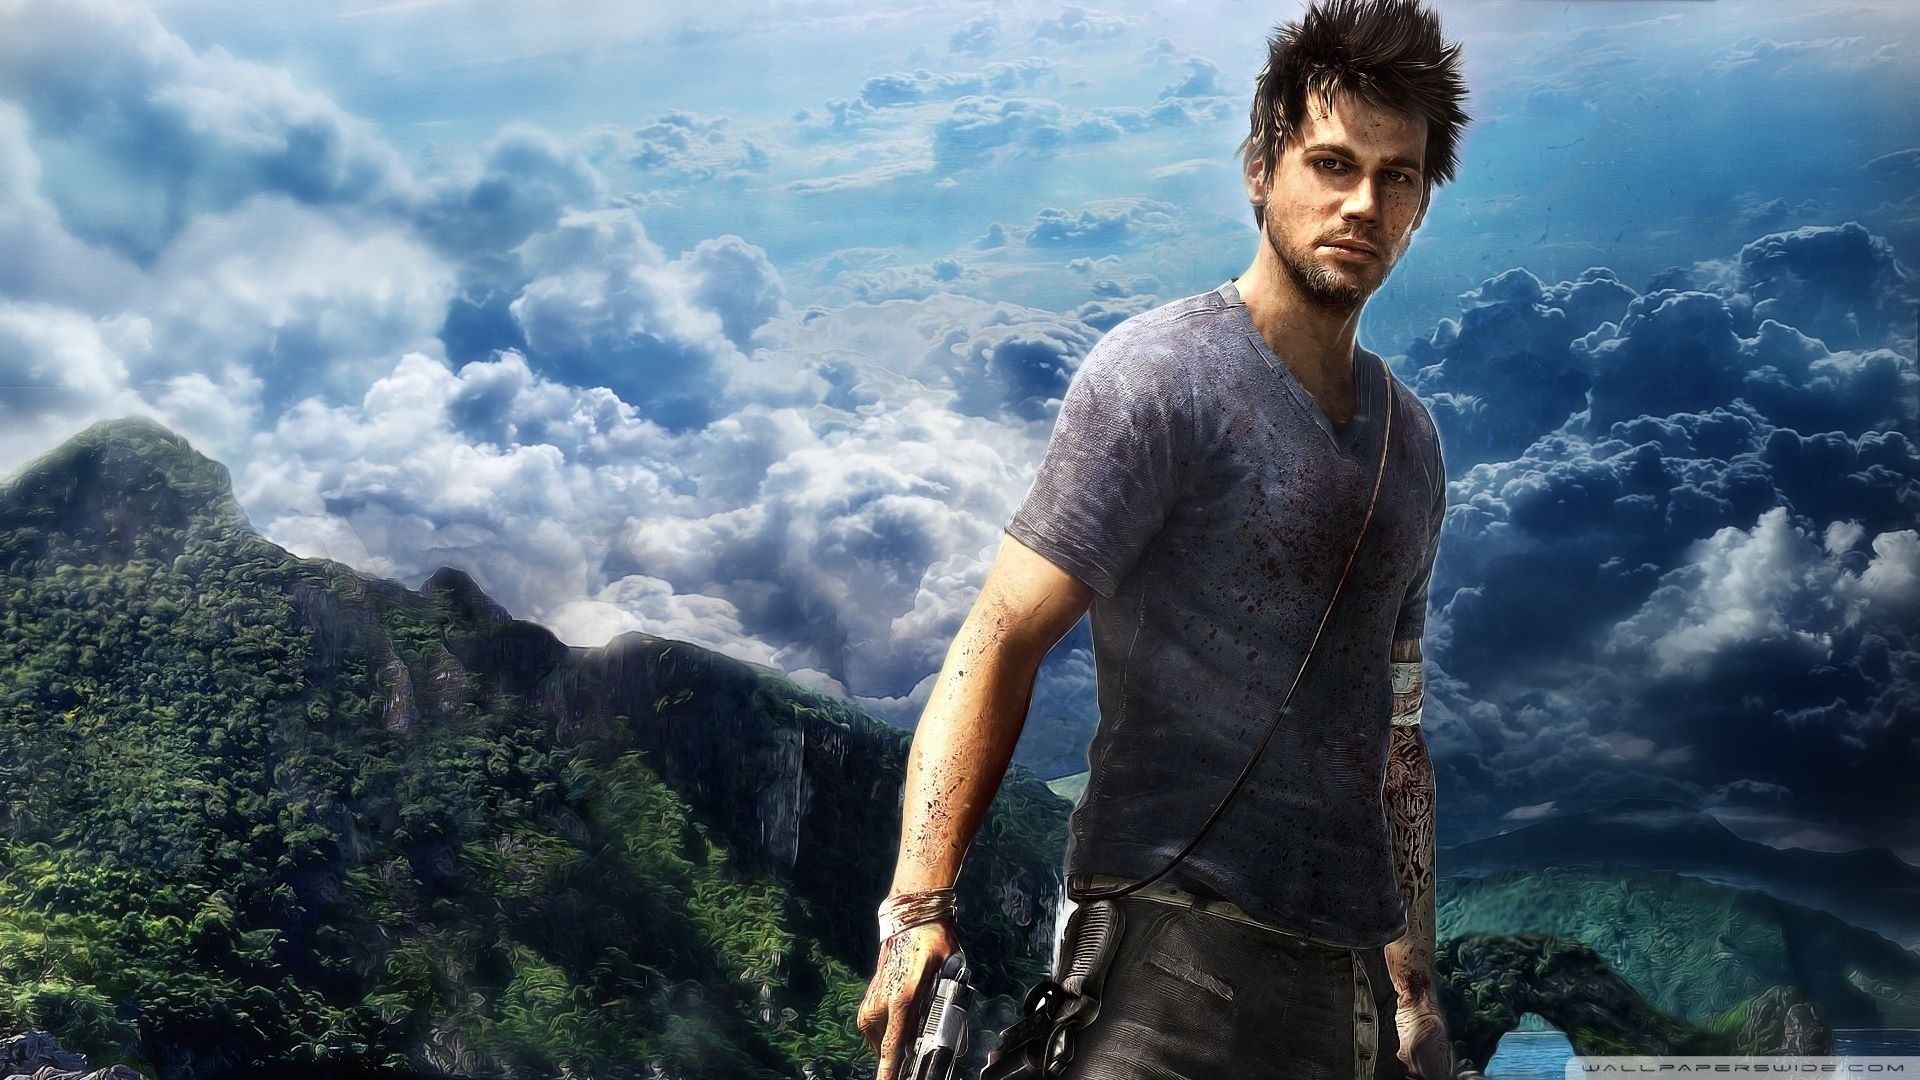 Video games Far Cry posters Far Cry screens wallpaper x